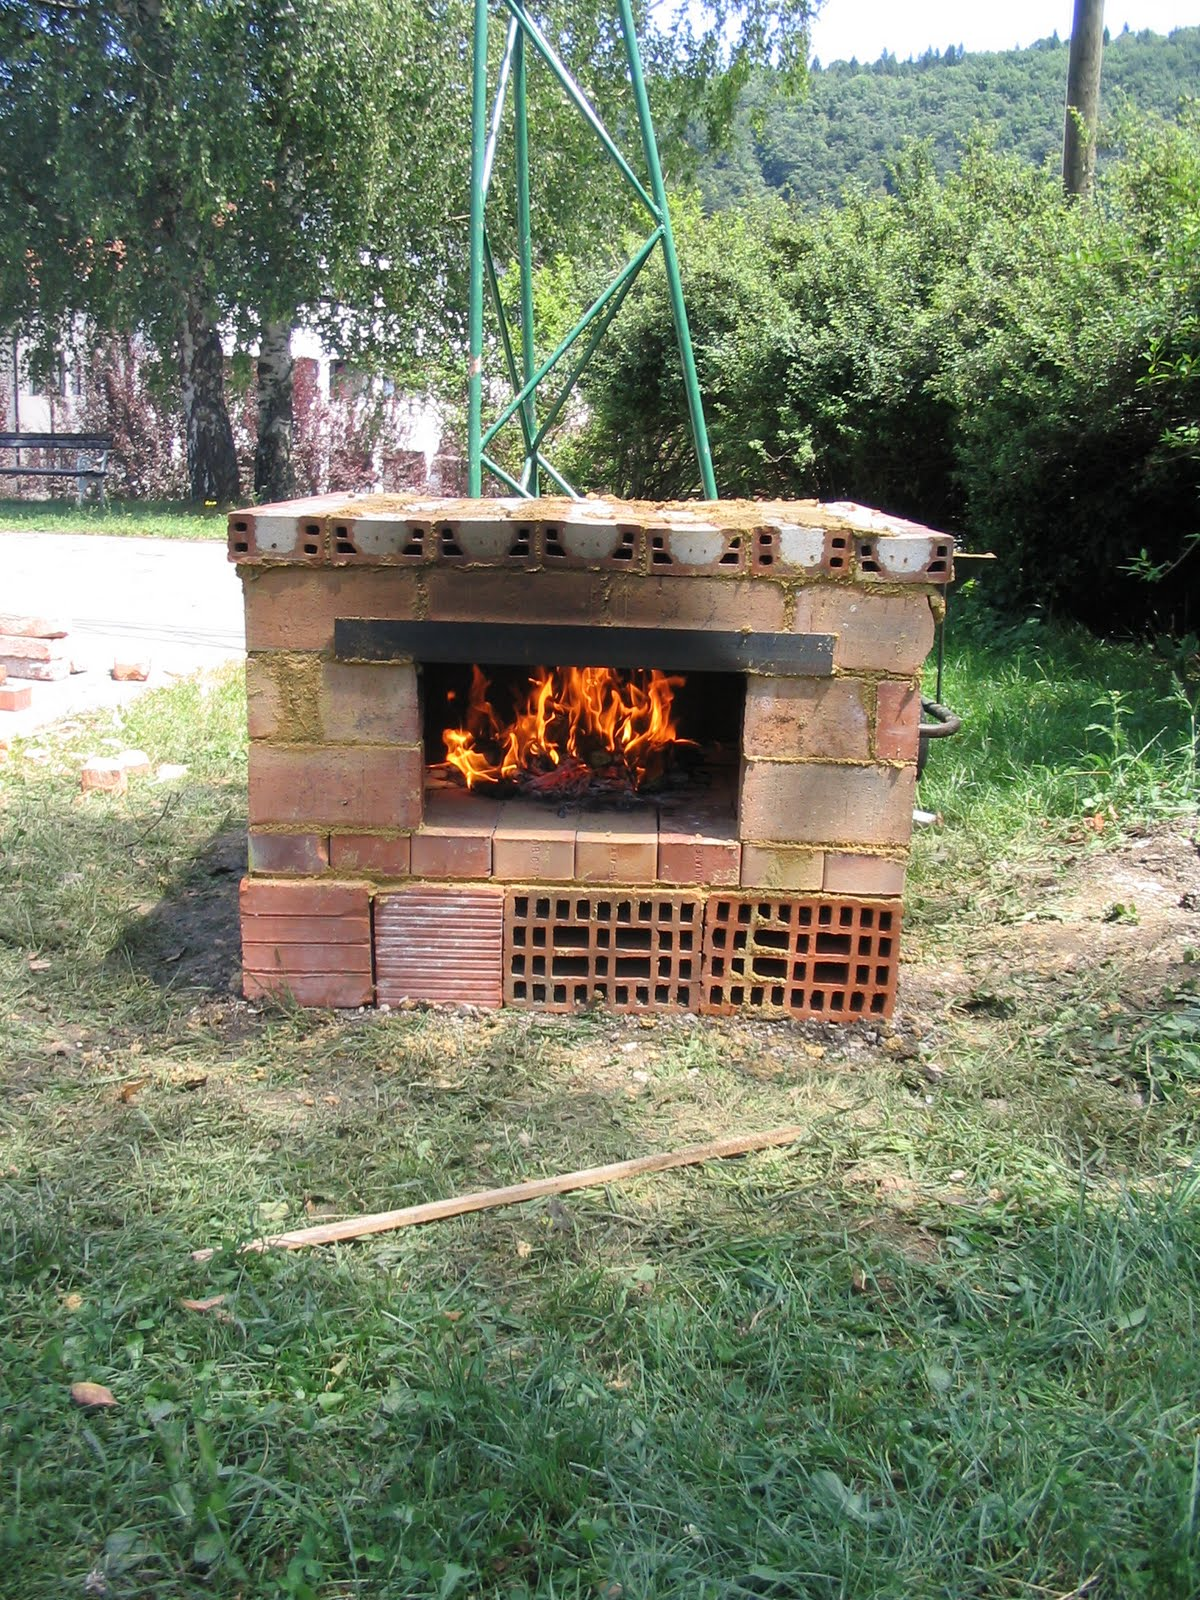 Building Ovens Baking And Cooking By Joc 2 Hour Brick Oven